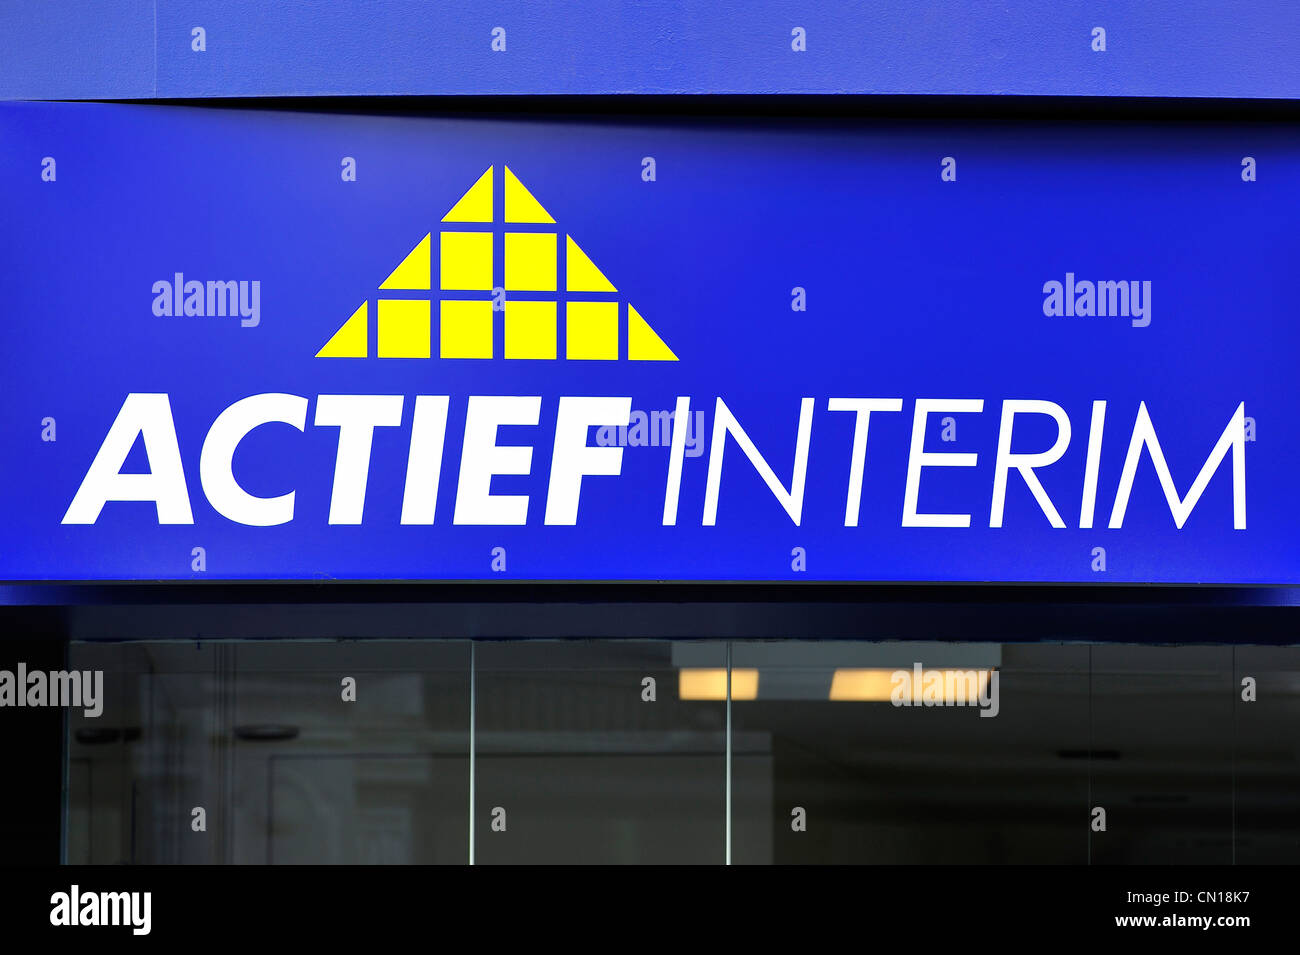 Signboard with logo for temporary employment agency Actief Interim, Flanders, Belgium - Stock Image